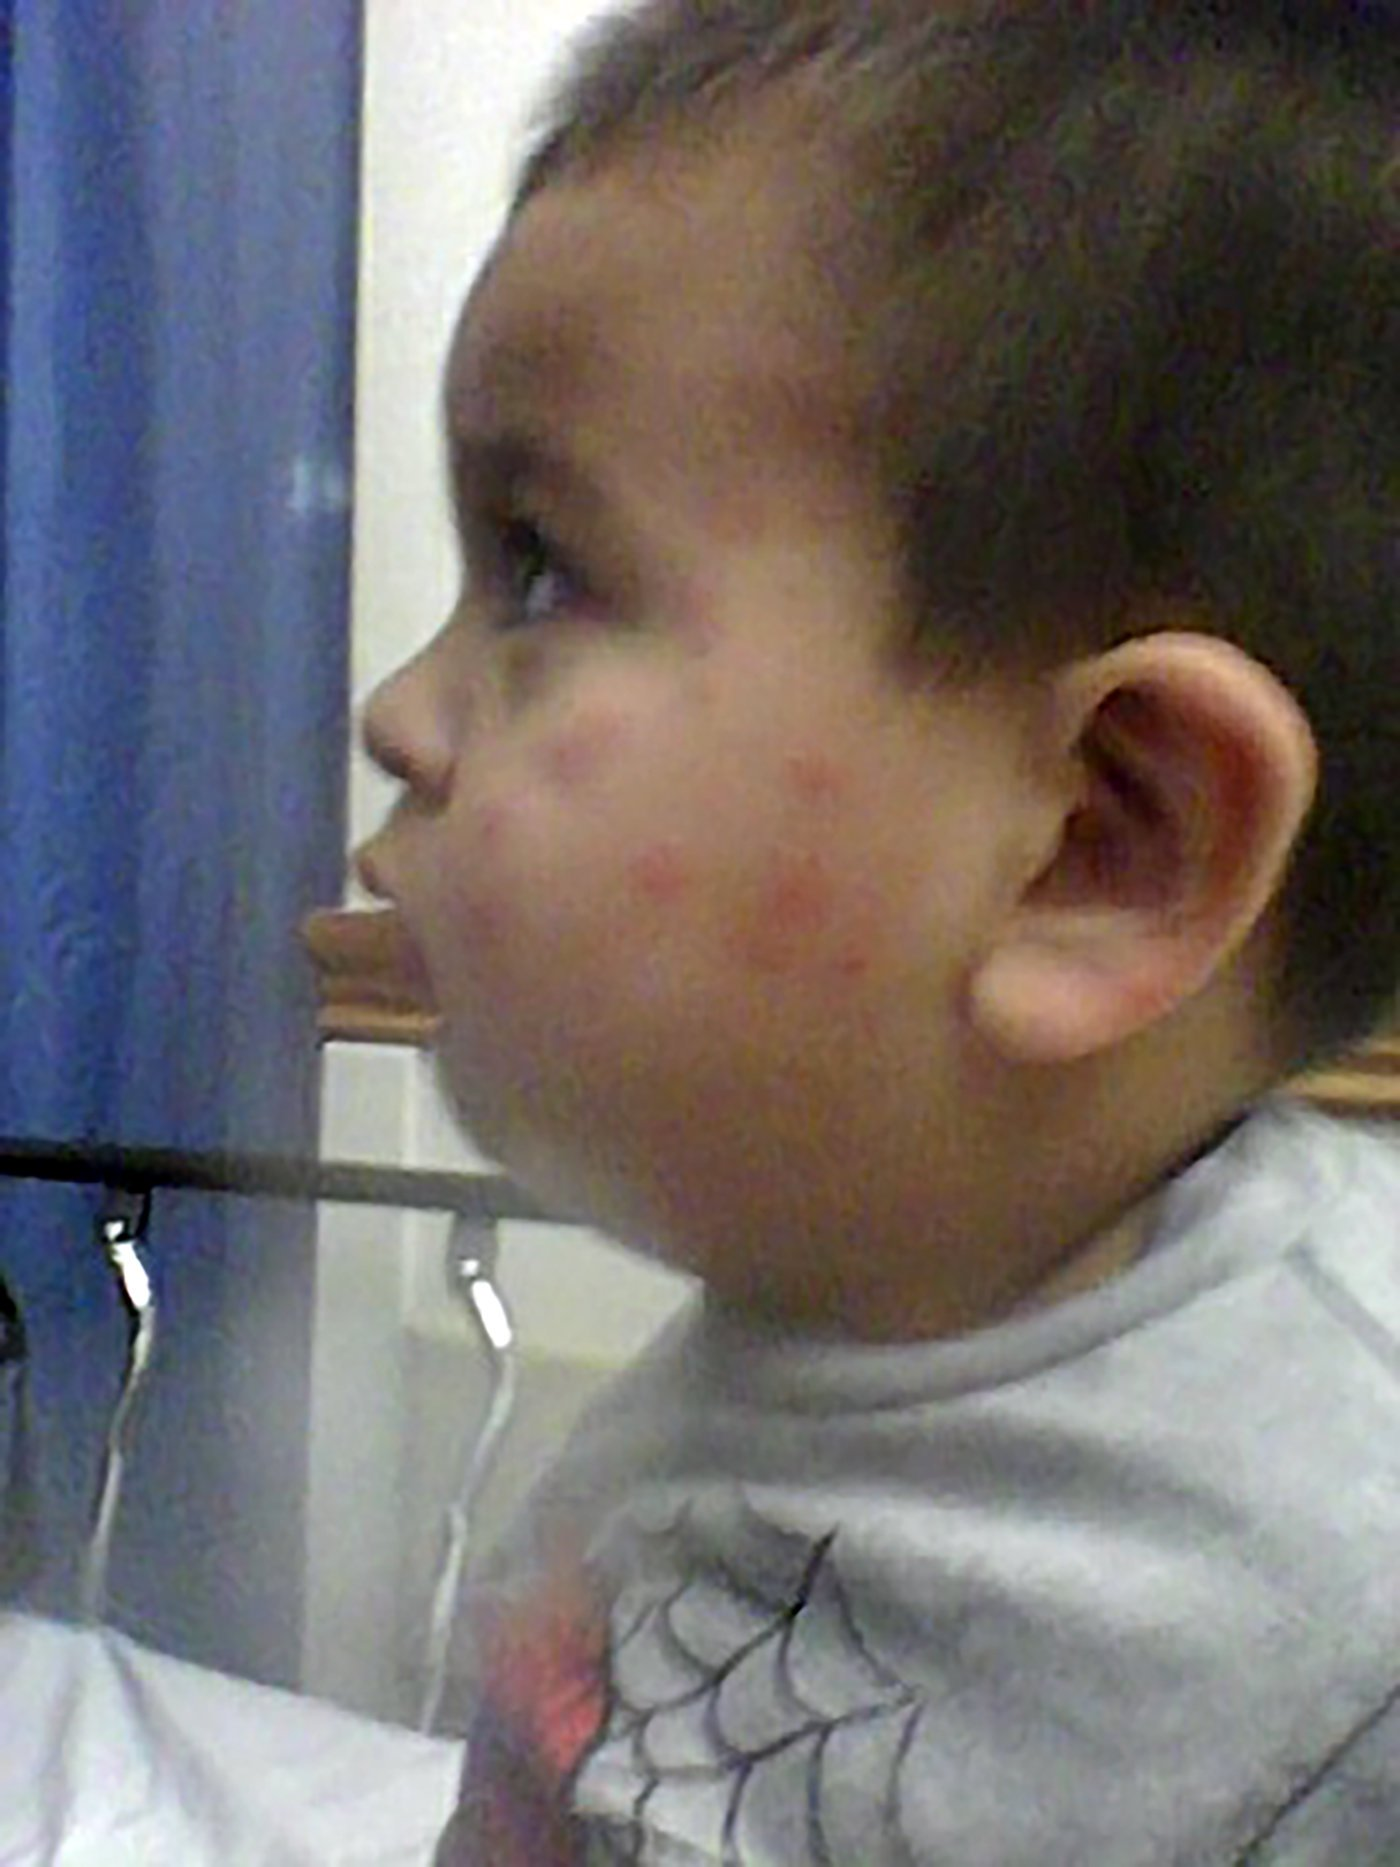 Jorge Maravilla's body was covered in bug bites as his parents battled an infestation that lasted for months. A civil jury awarded his family $1.6 million on Monday. Credit via Brian Virag